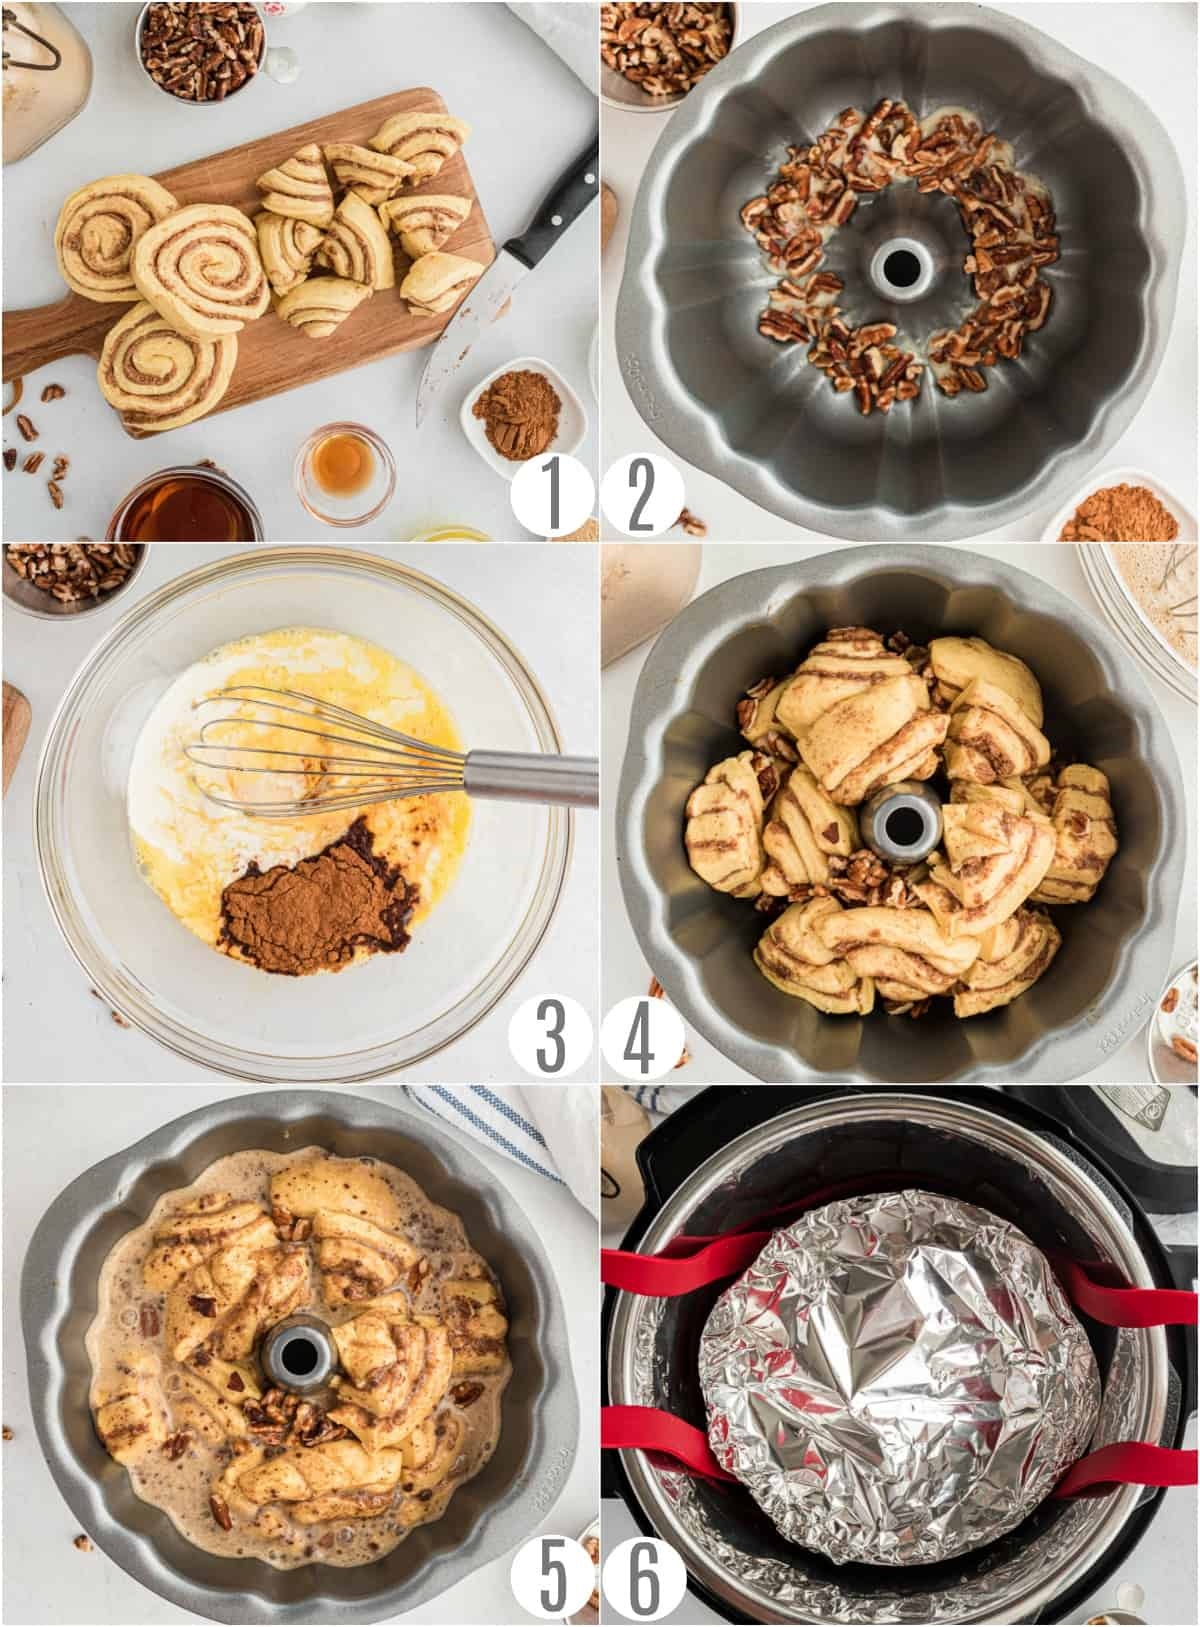 Step by step photos showing how to make cinnamon roll bread in the pressure cooker.